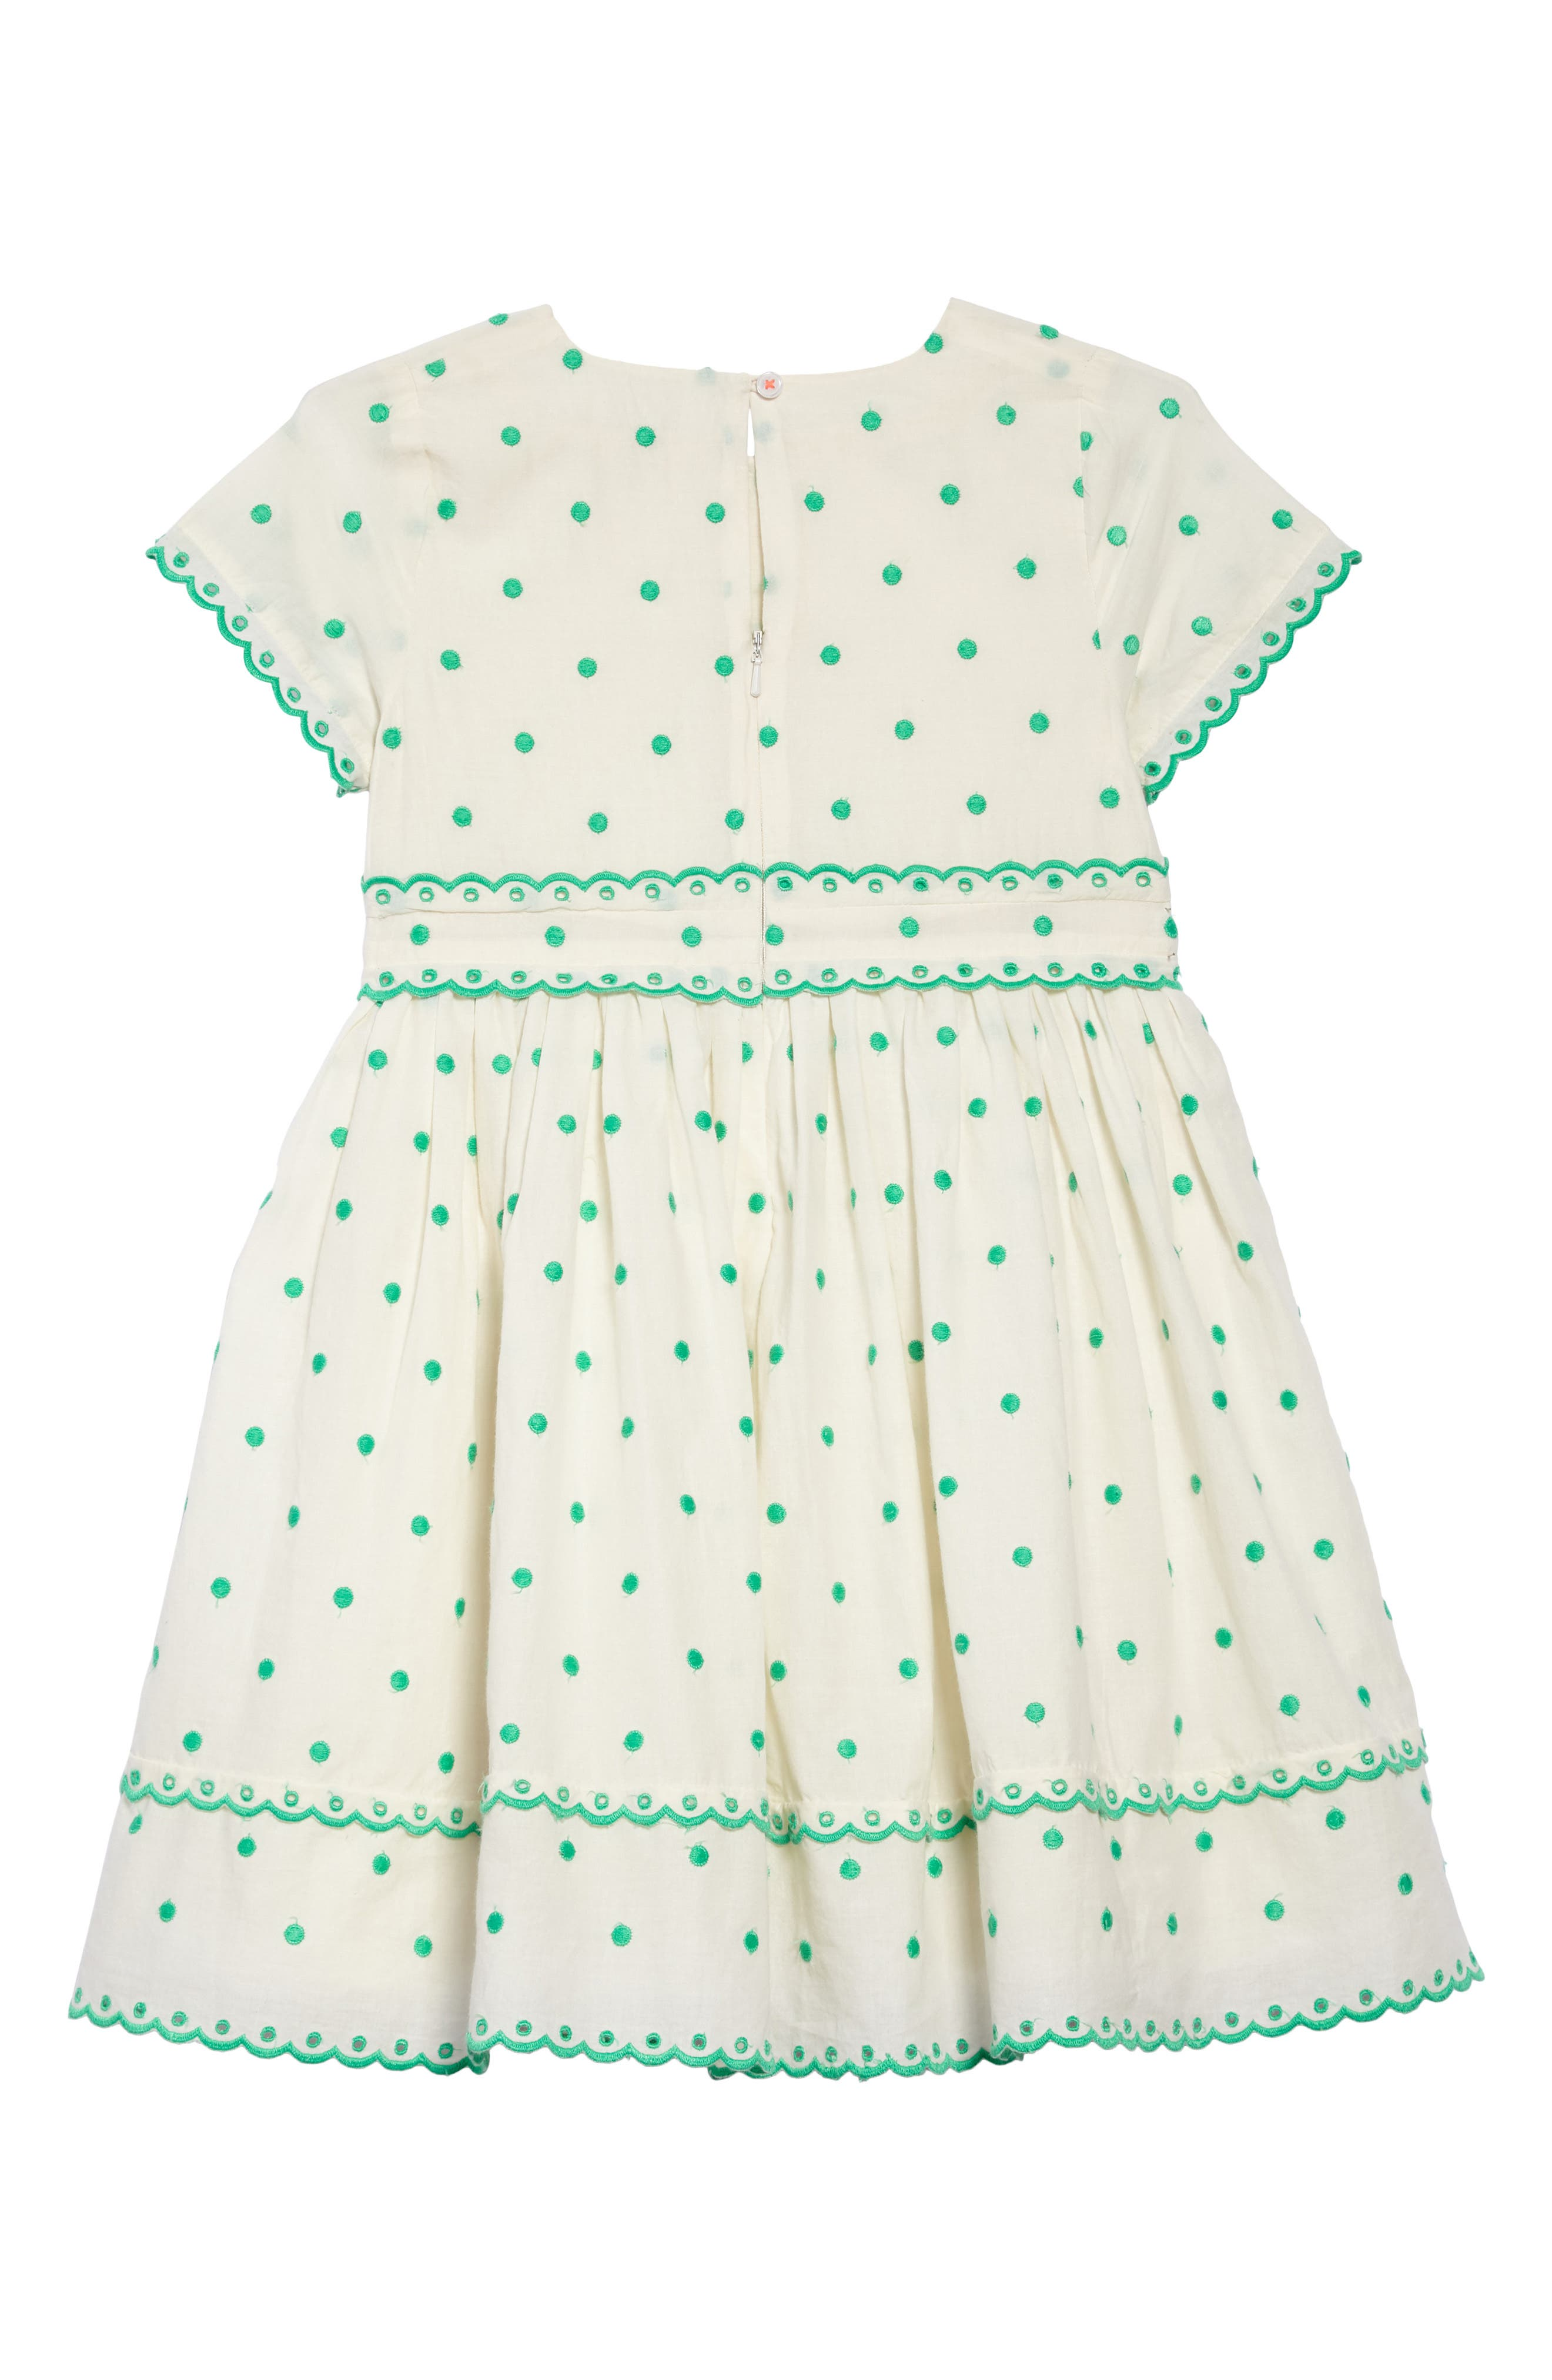 Embroidered Dot Scalloped Dress,                             Alternate thumbnail 2, color,                             Sptecru/ Mint Embroidered Spot